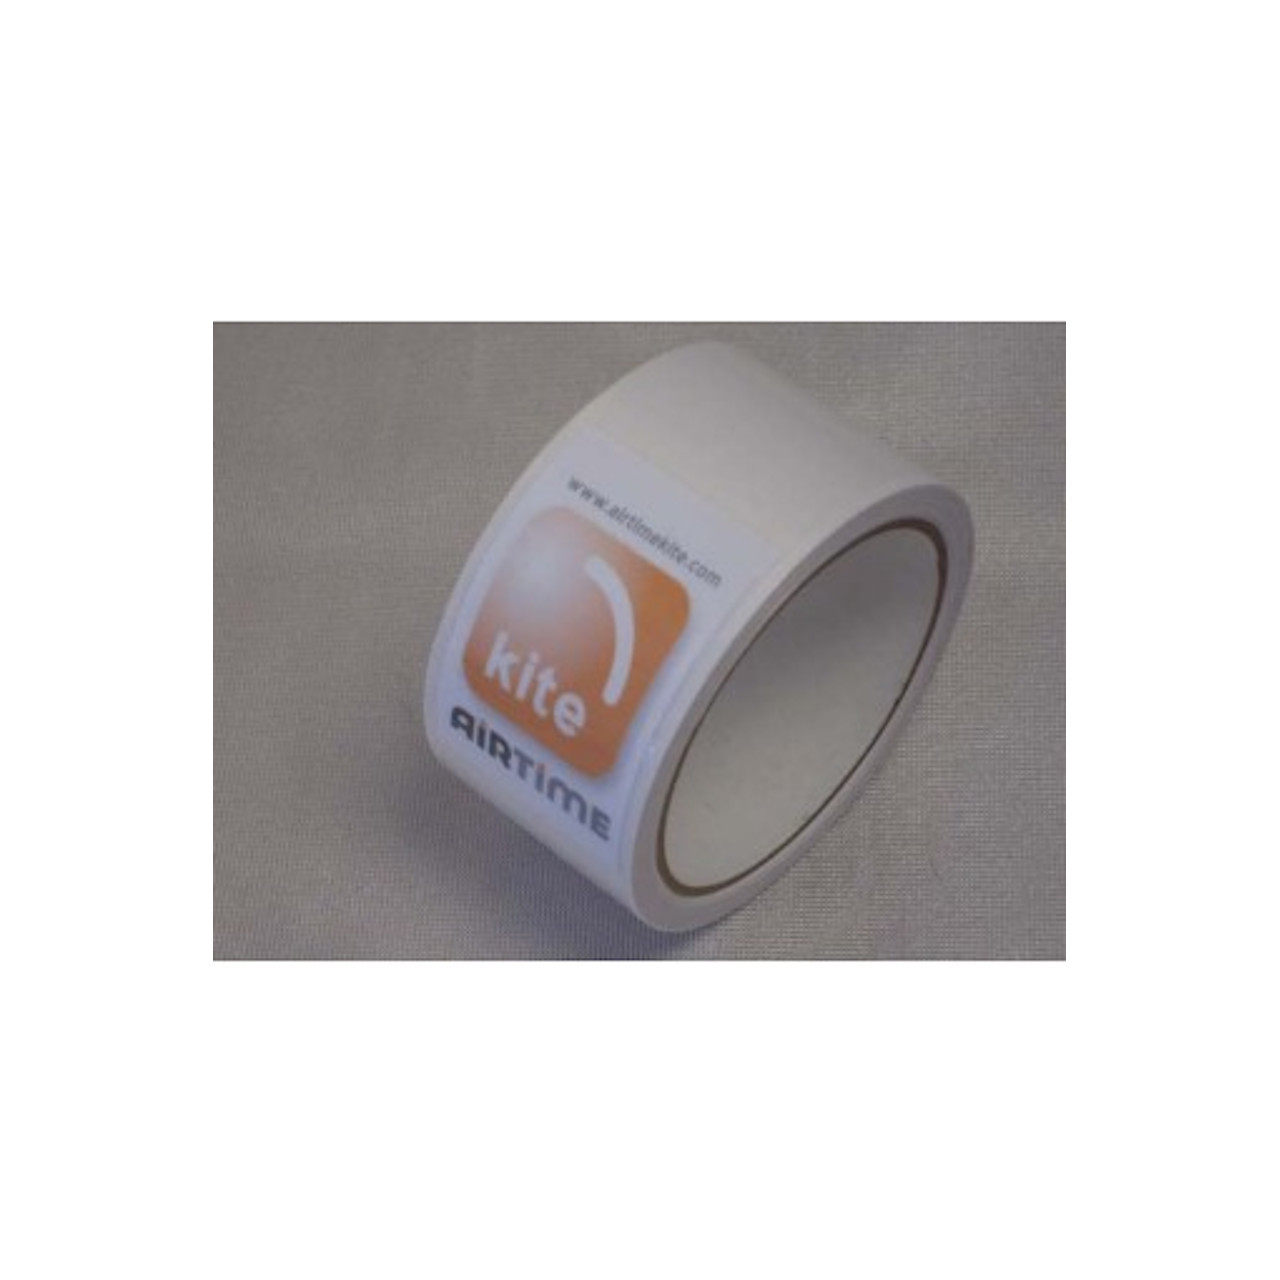 "Airtime Nylon tape - 2"" x 25' roll"